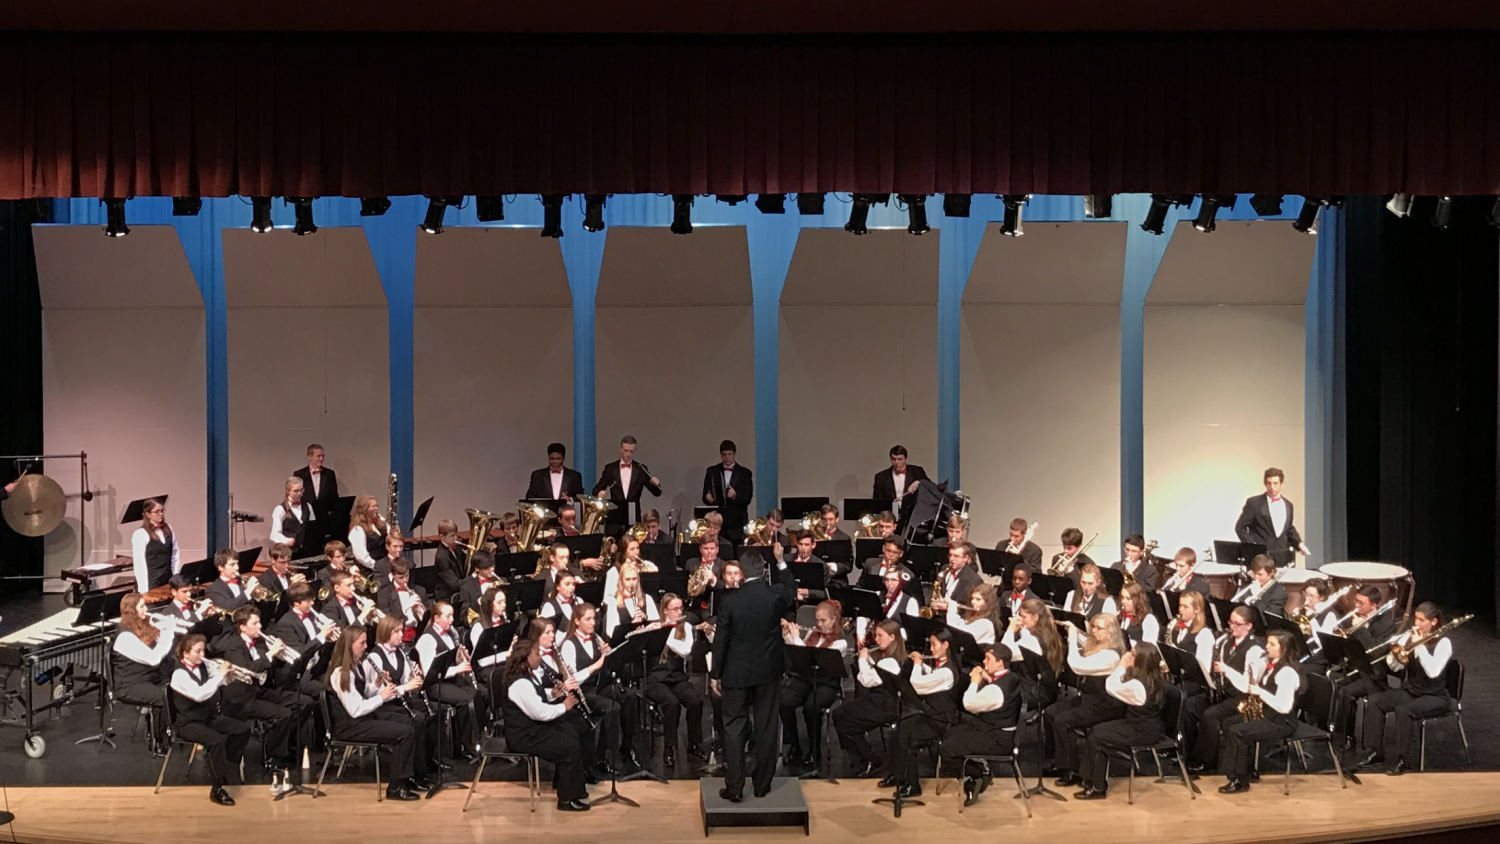 The Symphonic Band performs.